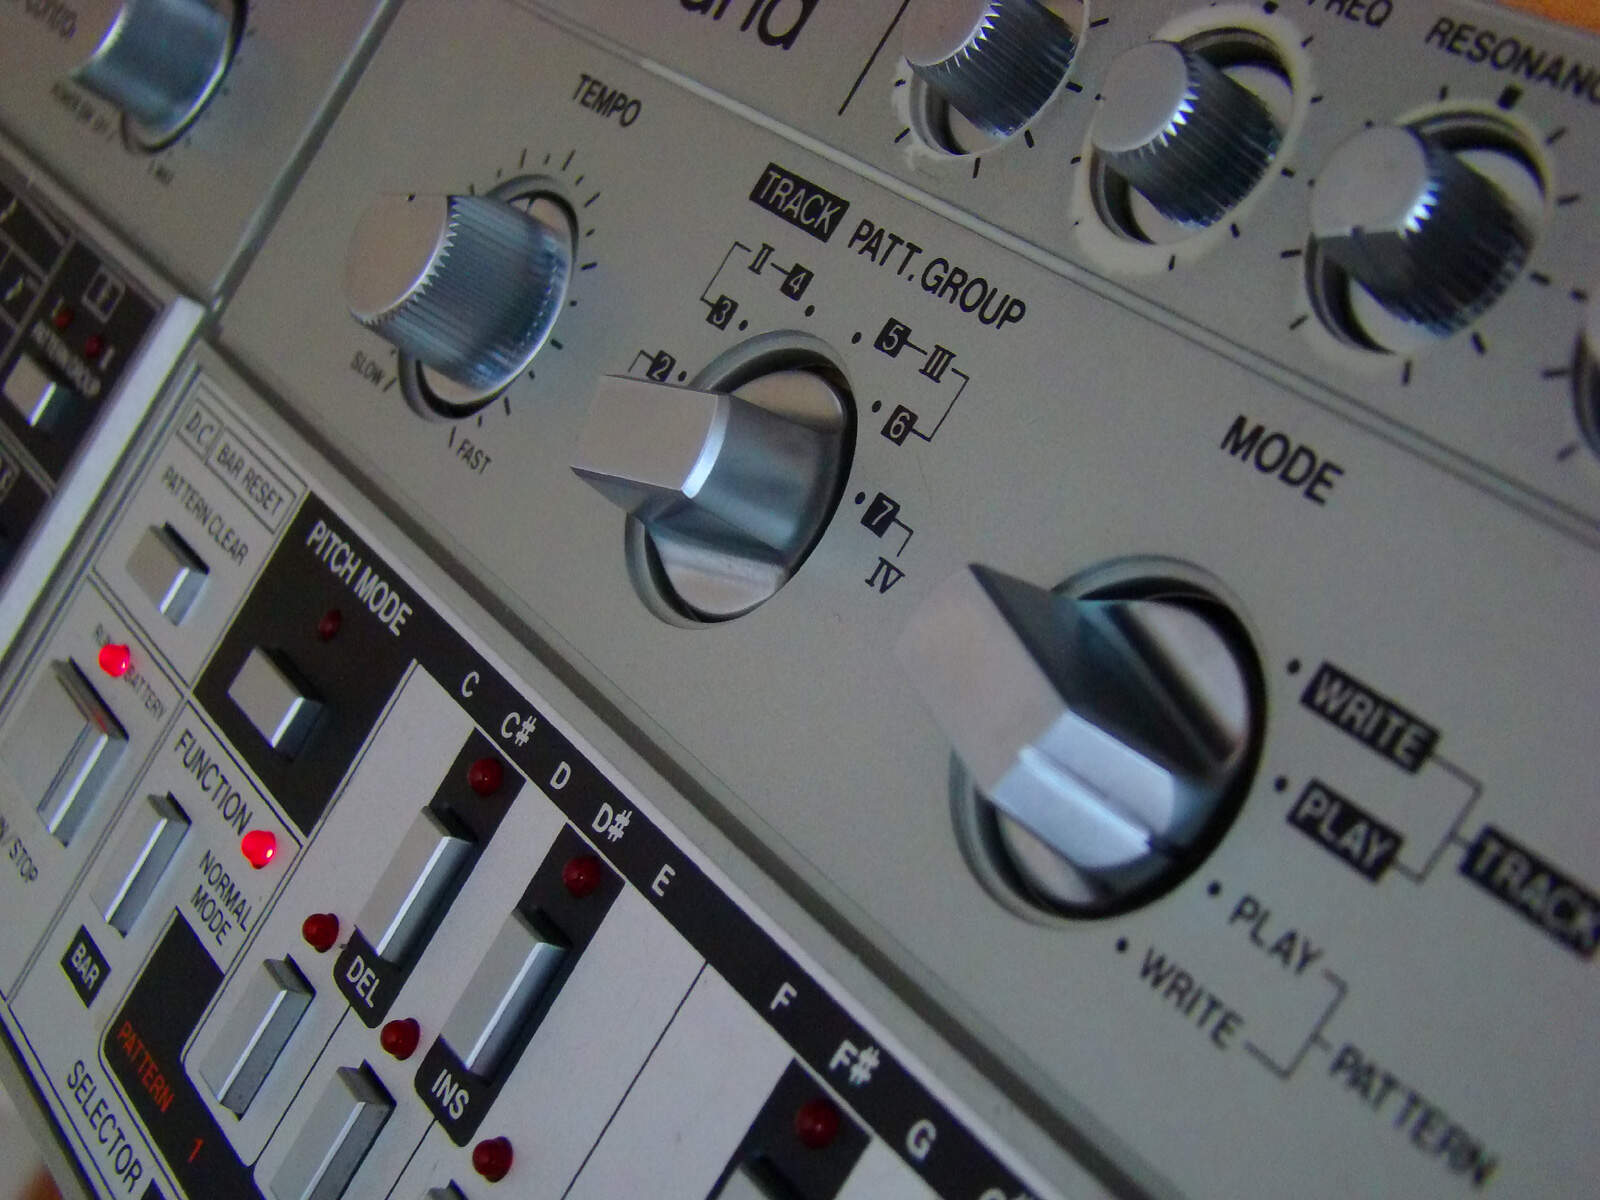 Best free TB-303 emulation sotwares : VST plugins & standalone